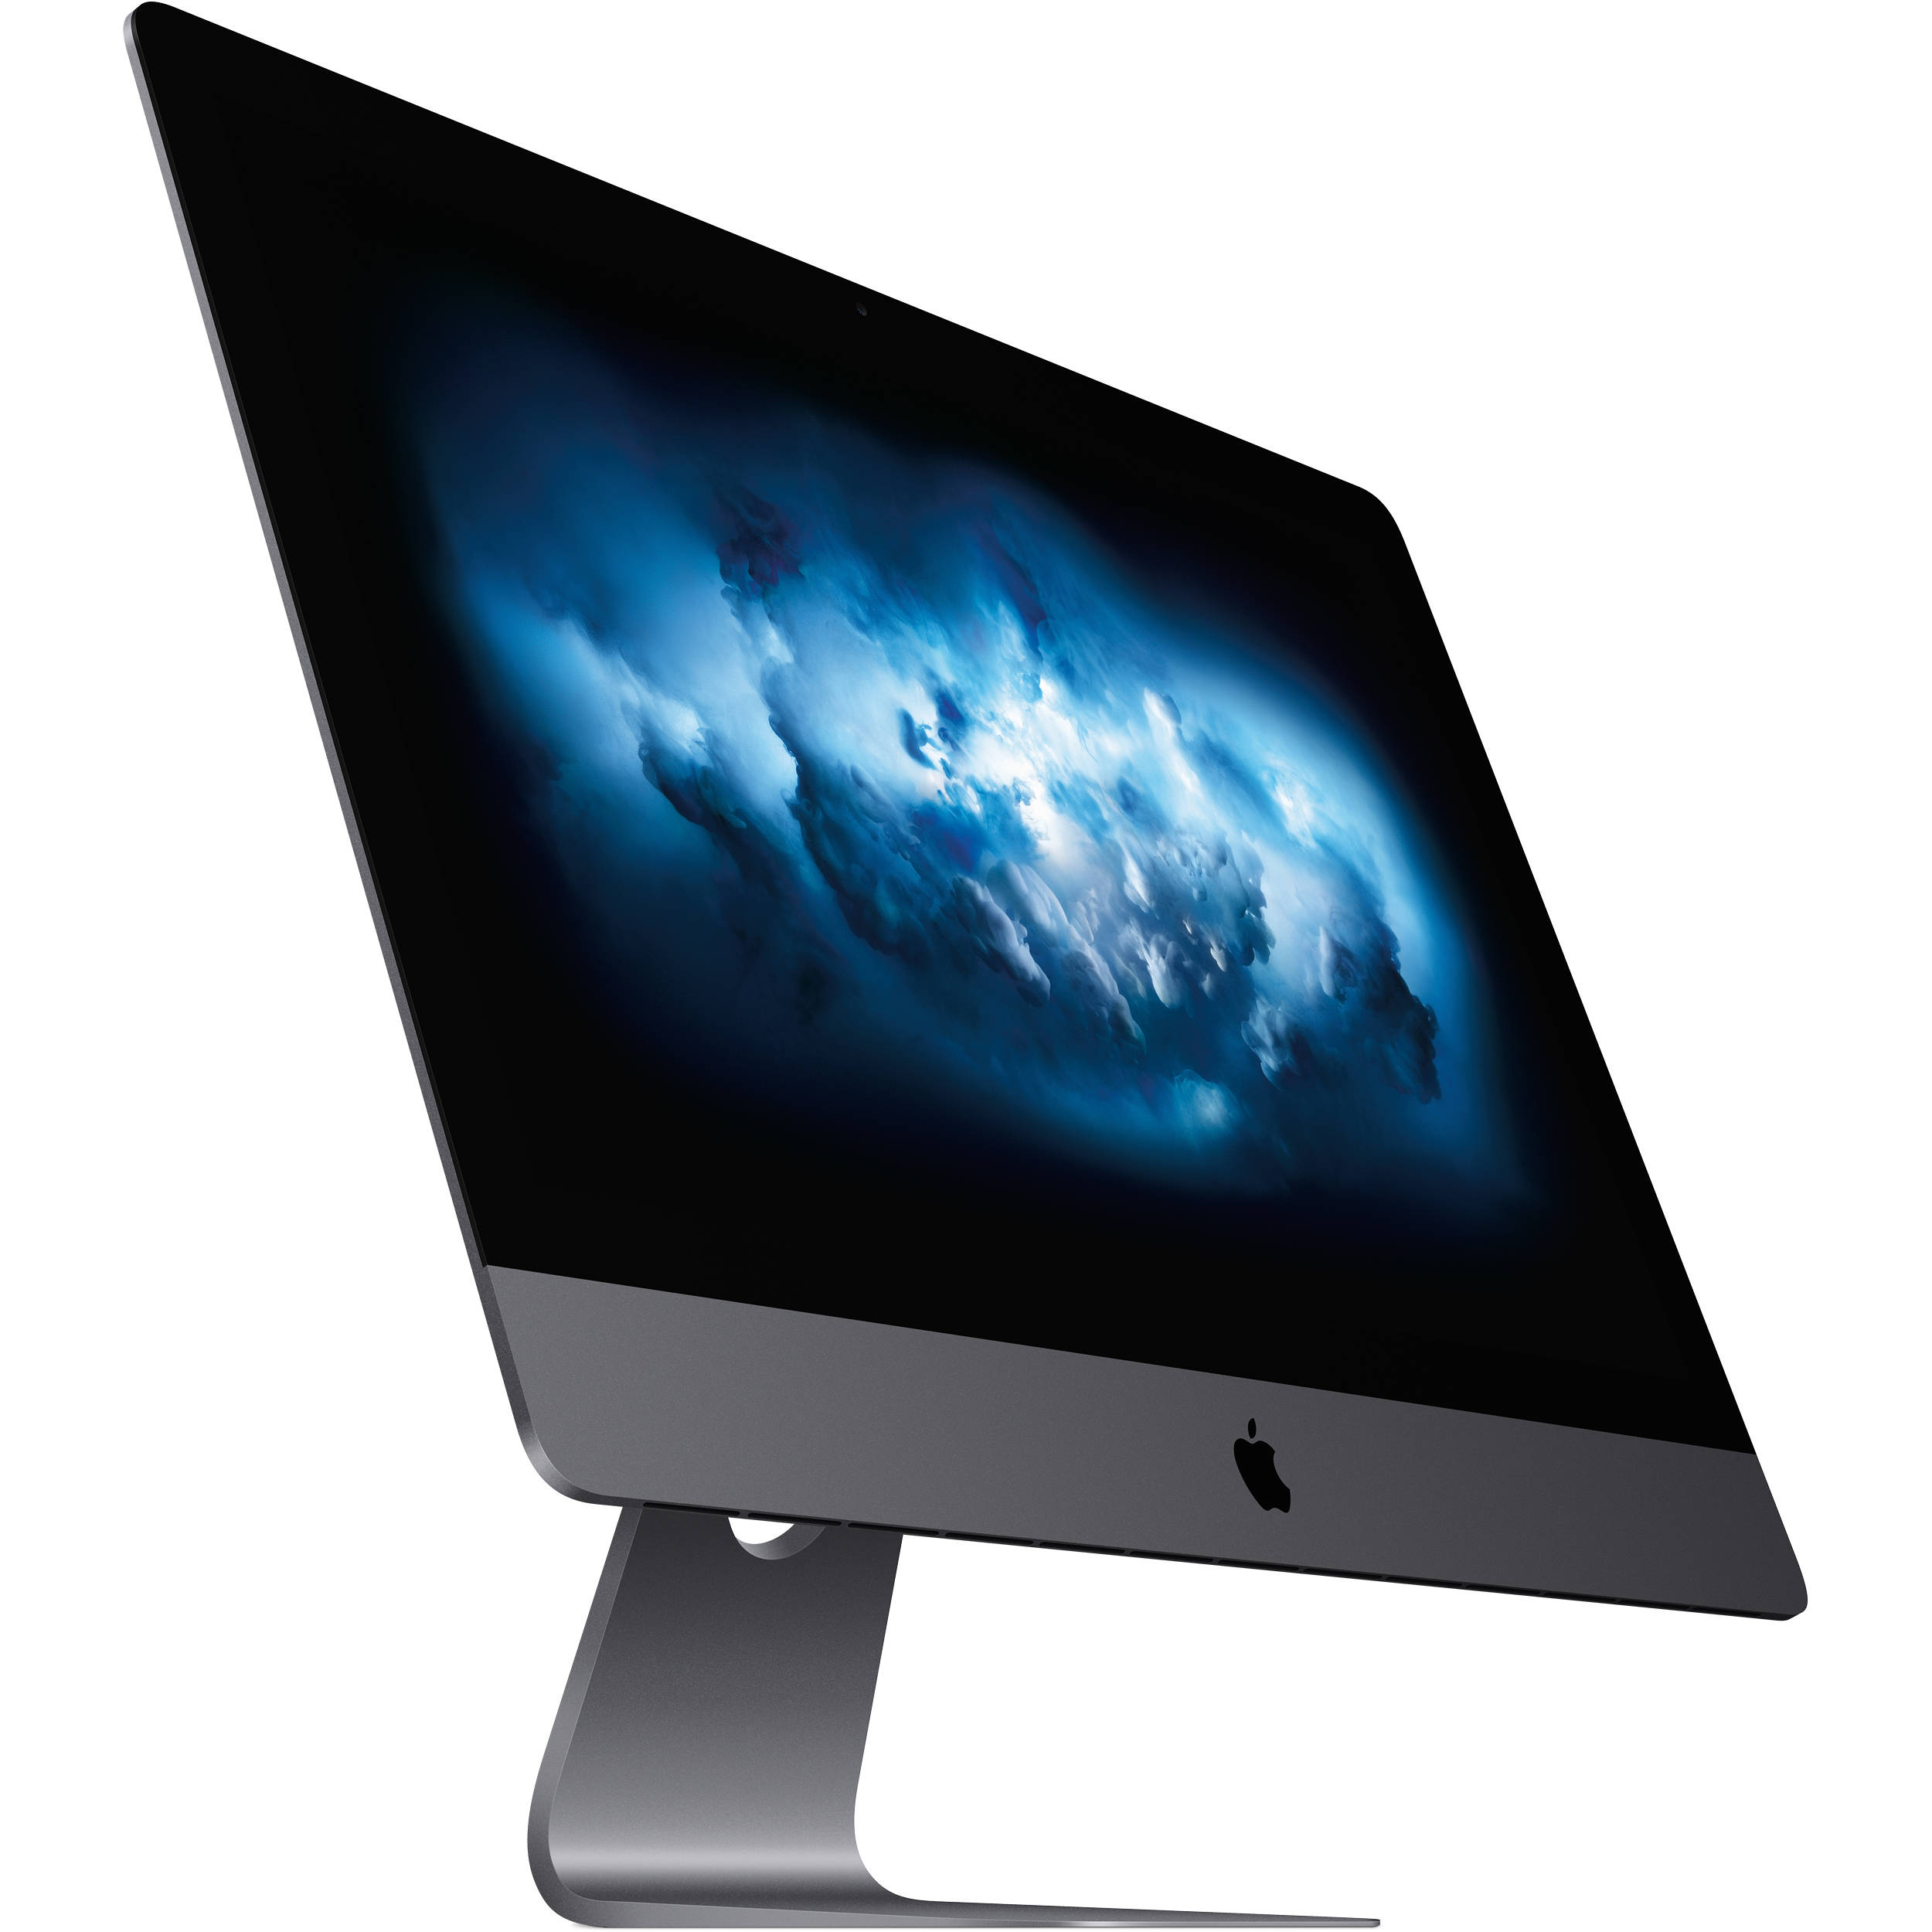 apple_z_8c1_bh_27_imac_pro_with_1513354265000_1380894